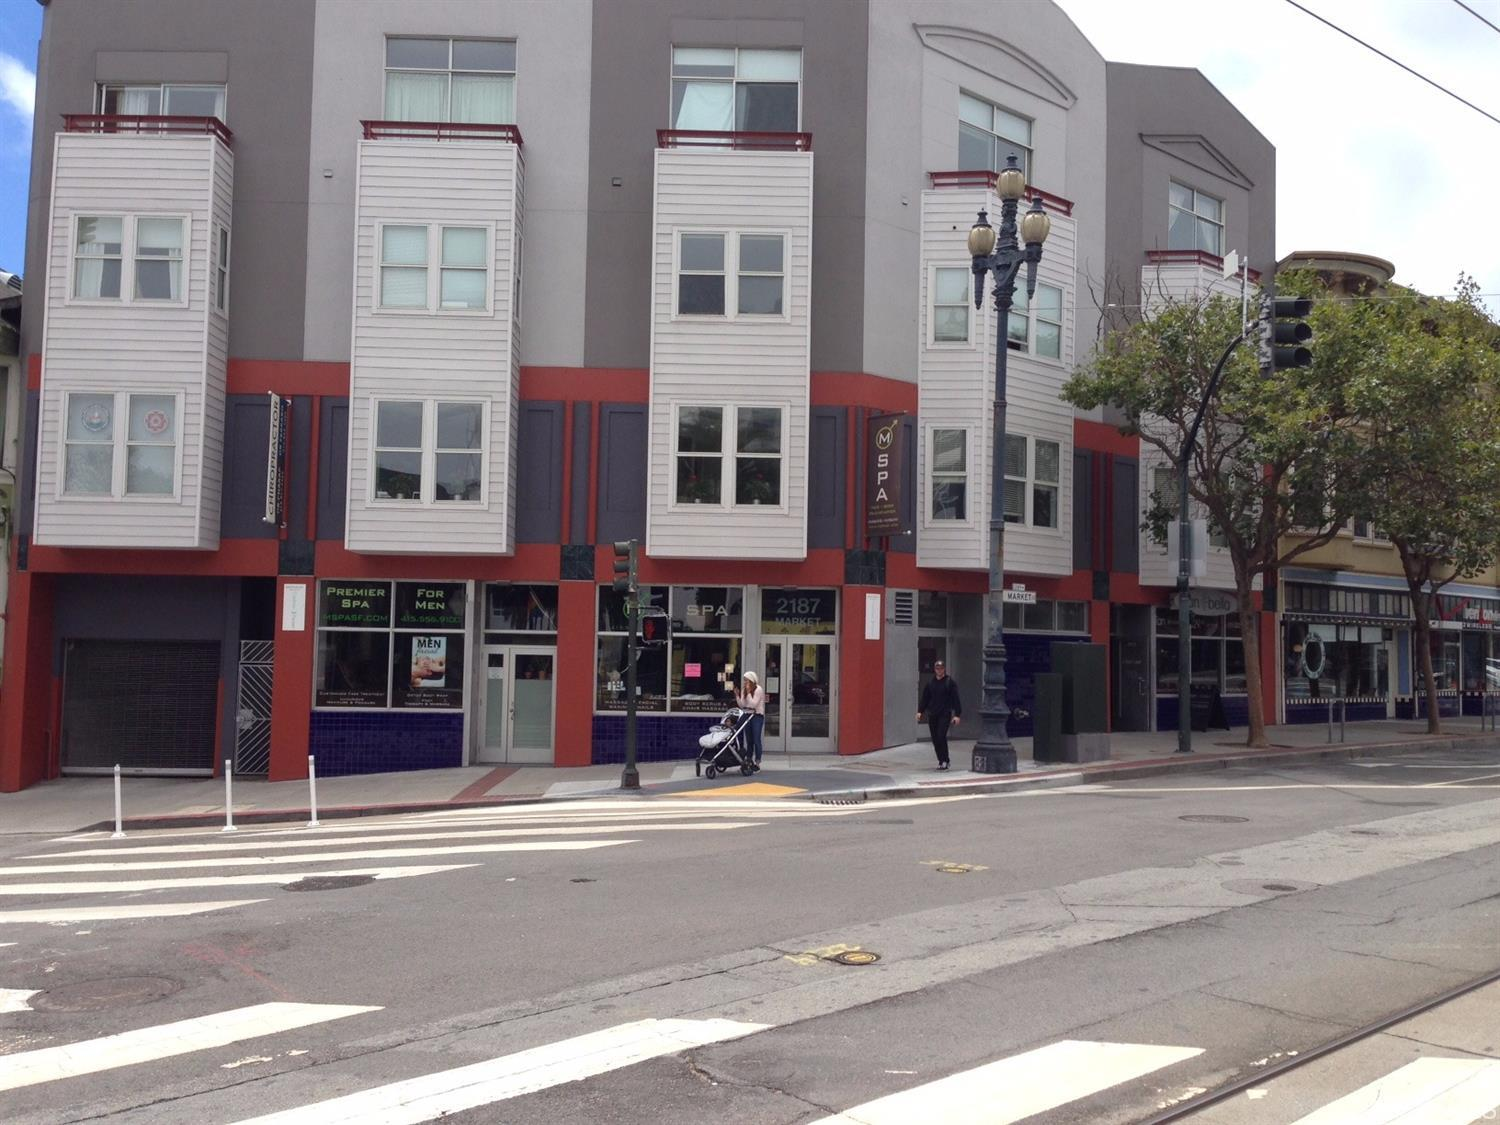 Additional photo for property listing at 2185-2187 Market Street  SAN FRANCISCO, CALIFORNIA 94114